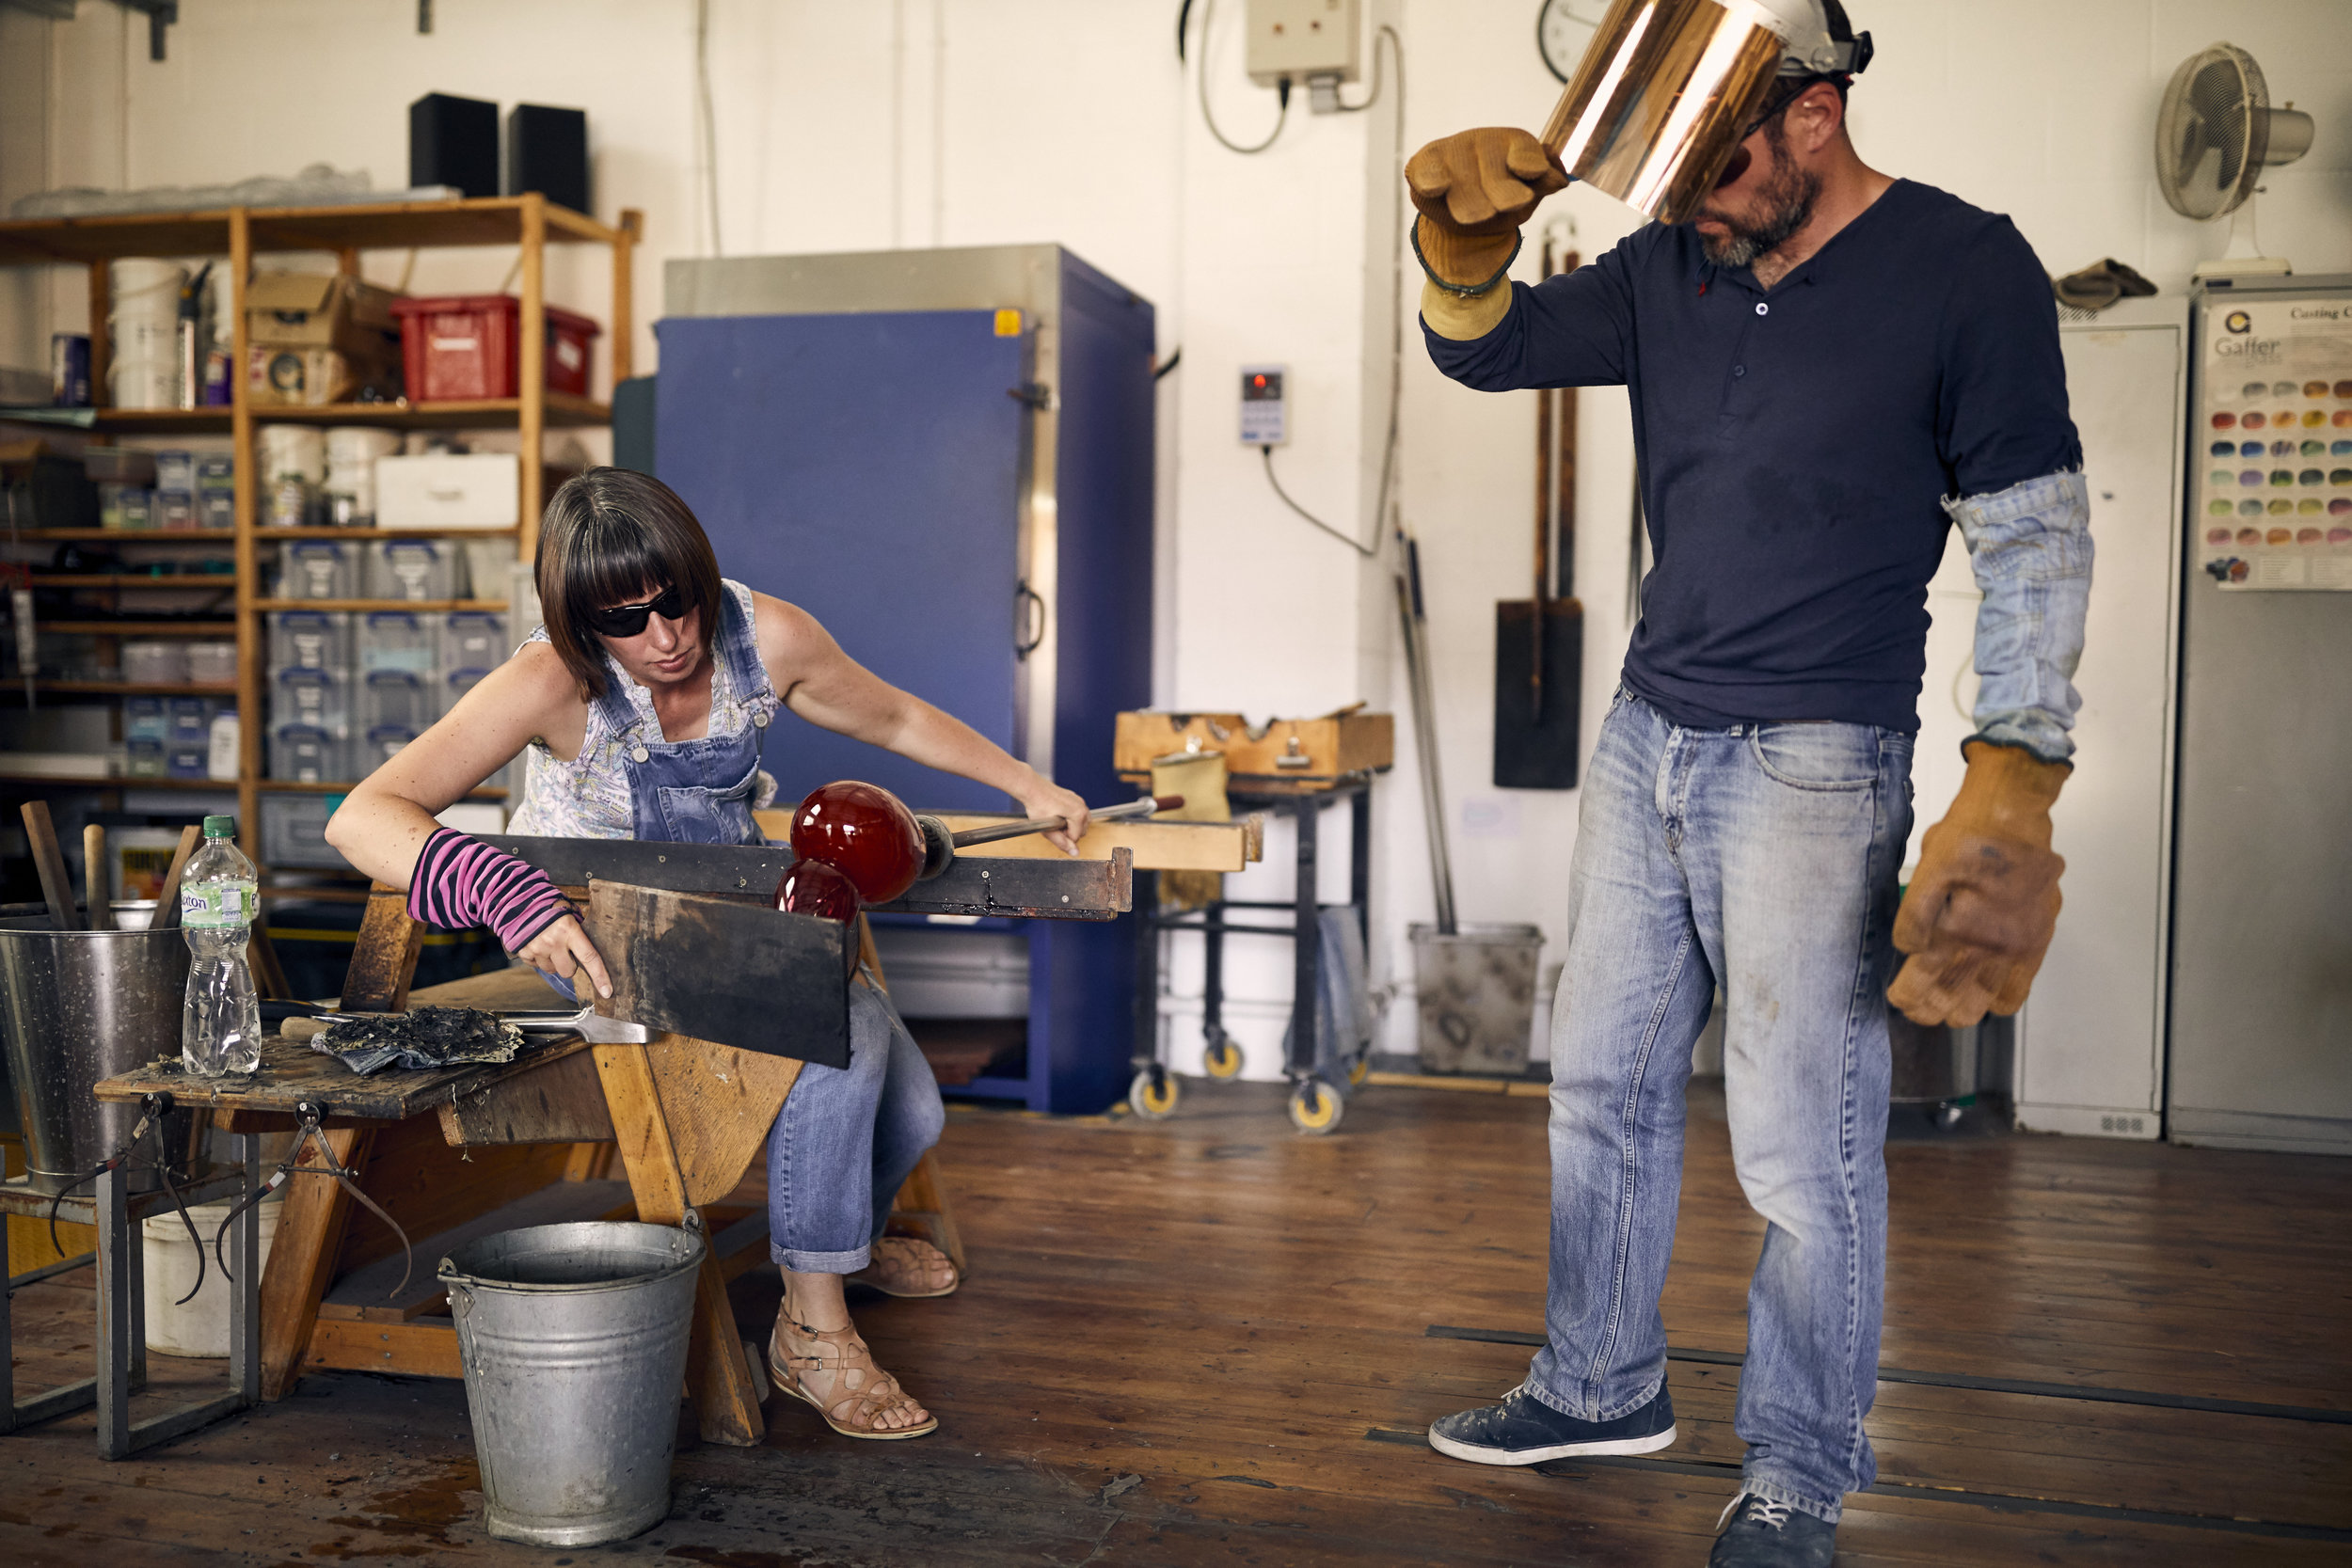 The Artisans - Blowing hot air: glass artists in Dorset - in pictures.